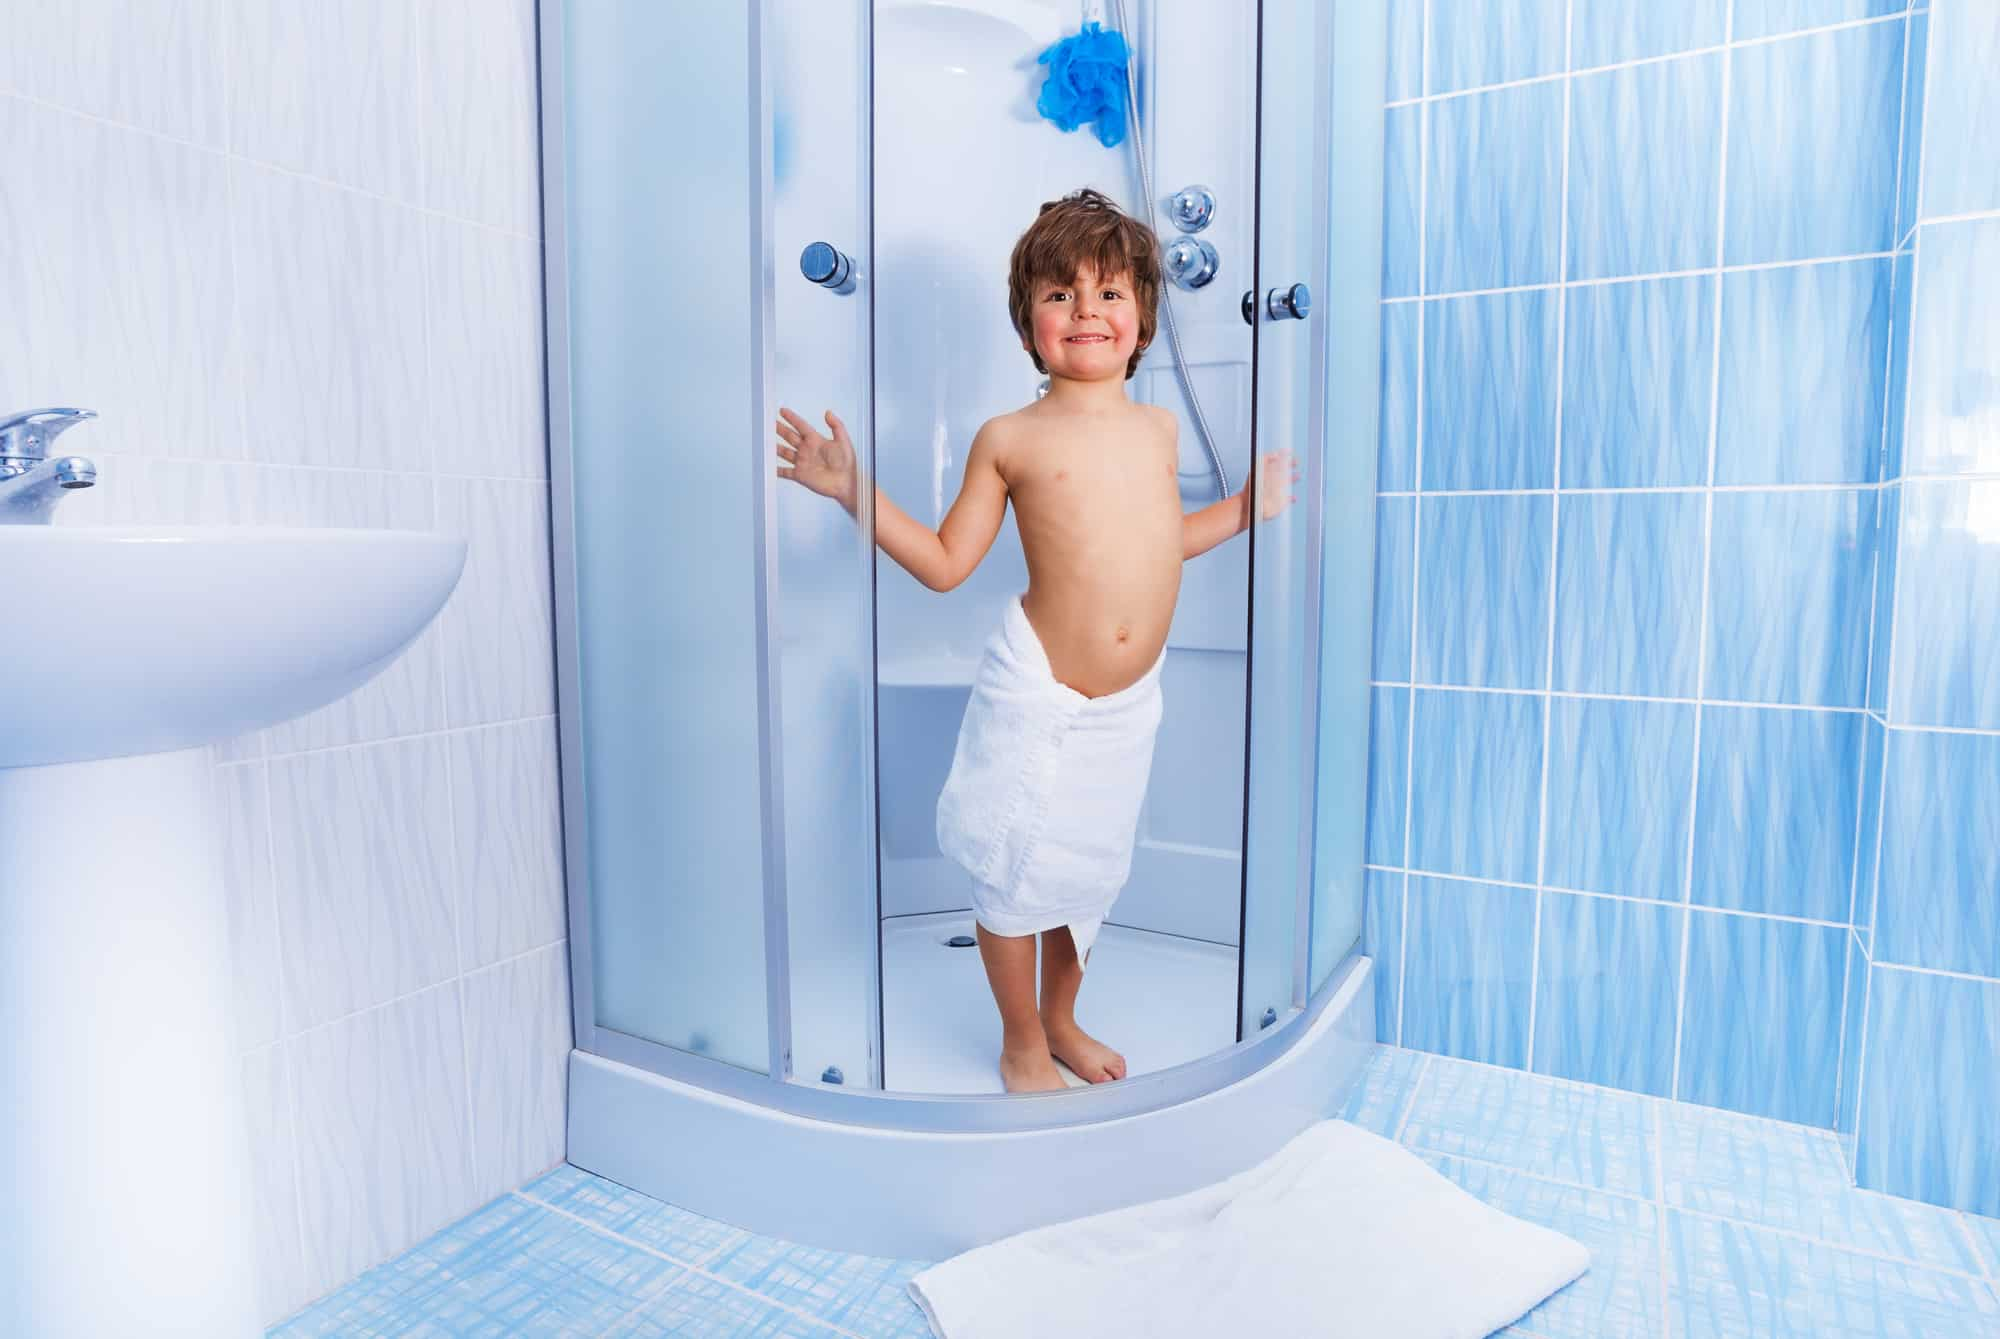 Little happy 4 years old boy opens doors in the hotel shower covered in white towel and smiling